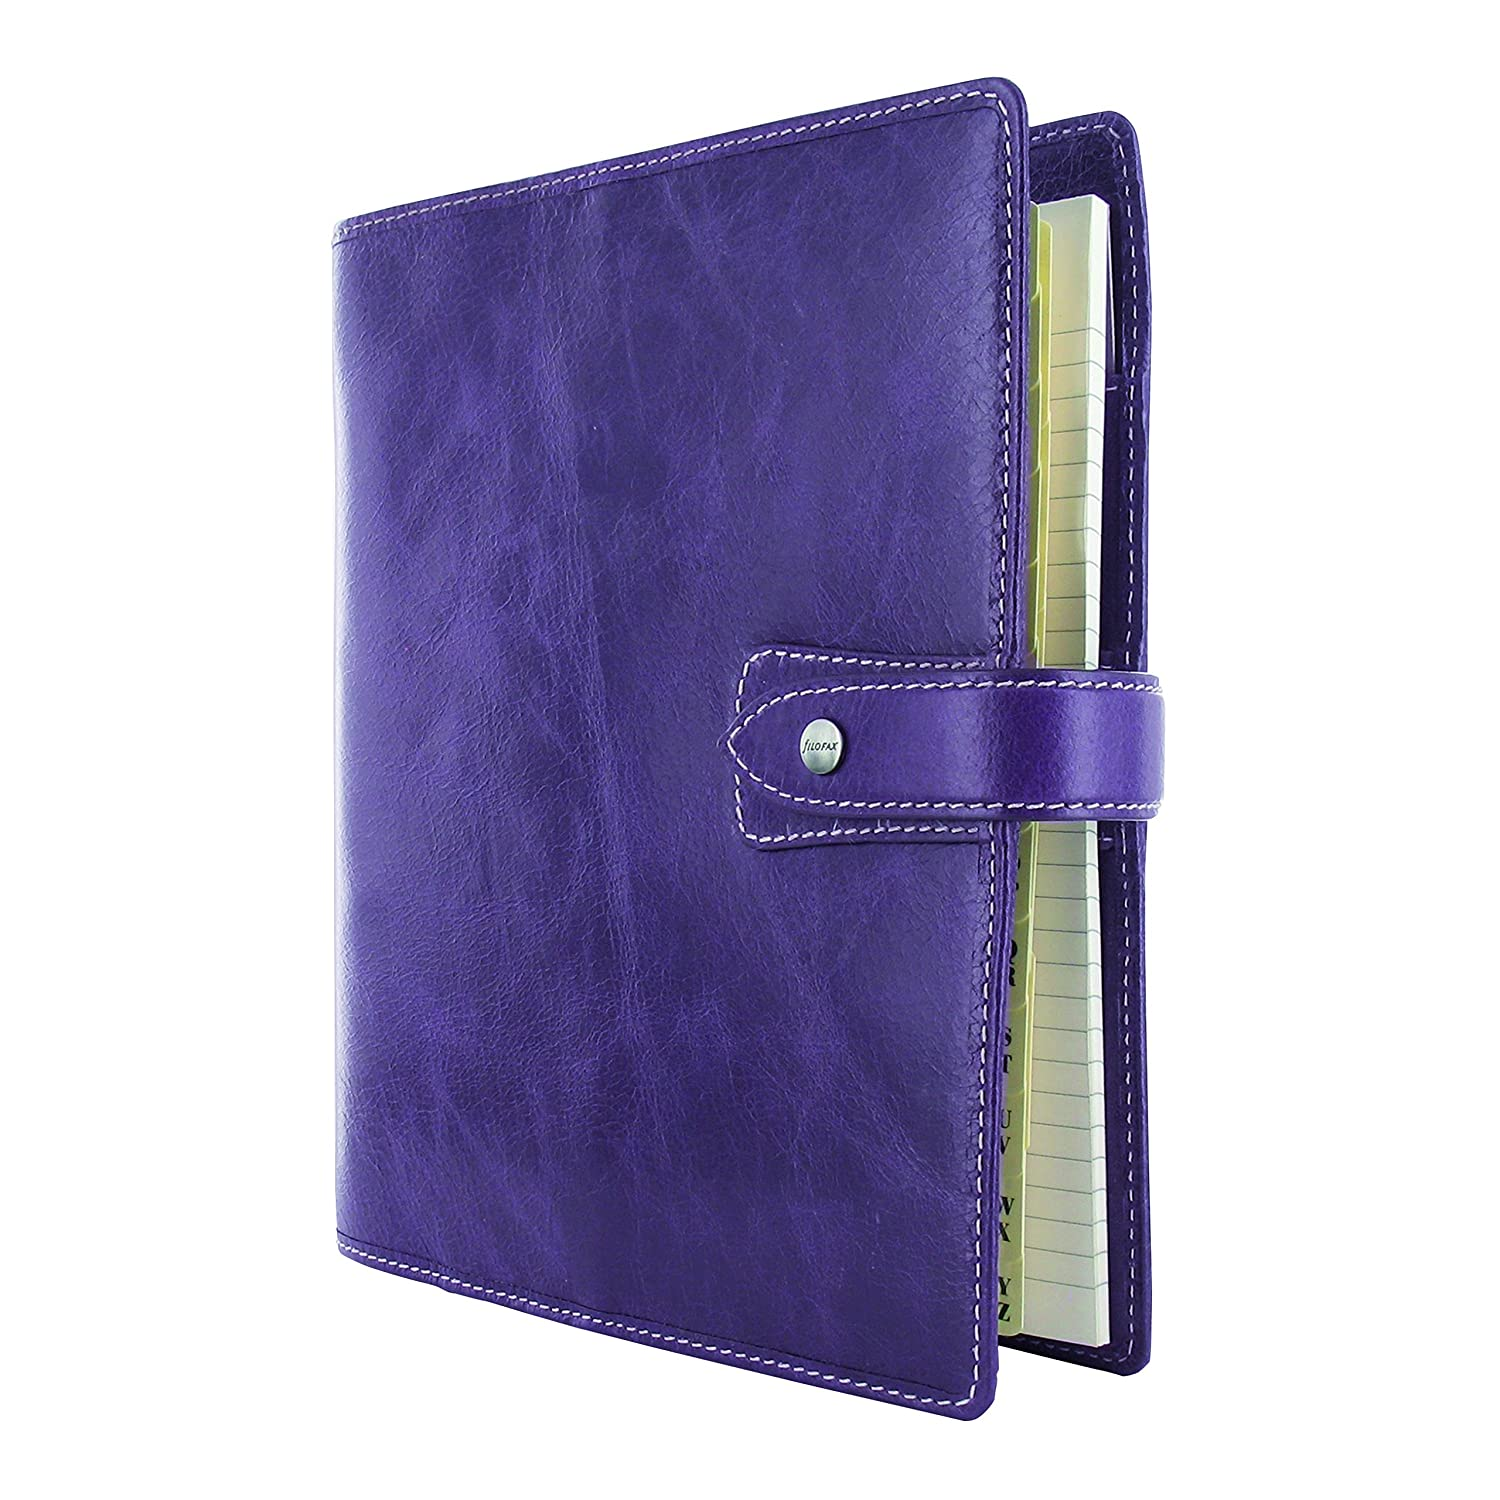 Filofax 2019 A5 Malden Organizer, Leather, Purple, Paper Size 8.25 x 5.75 inches (C025851-19)